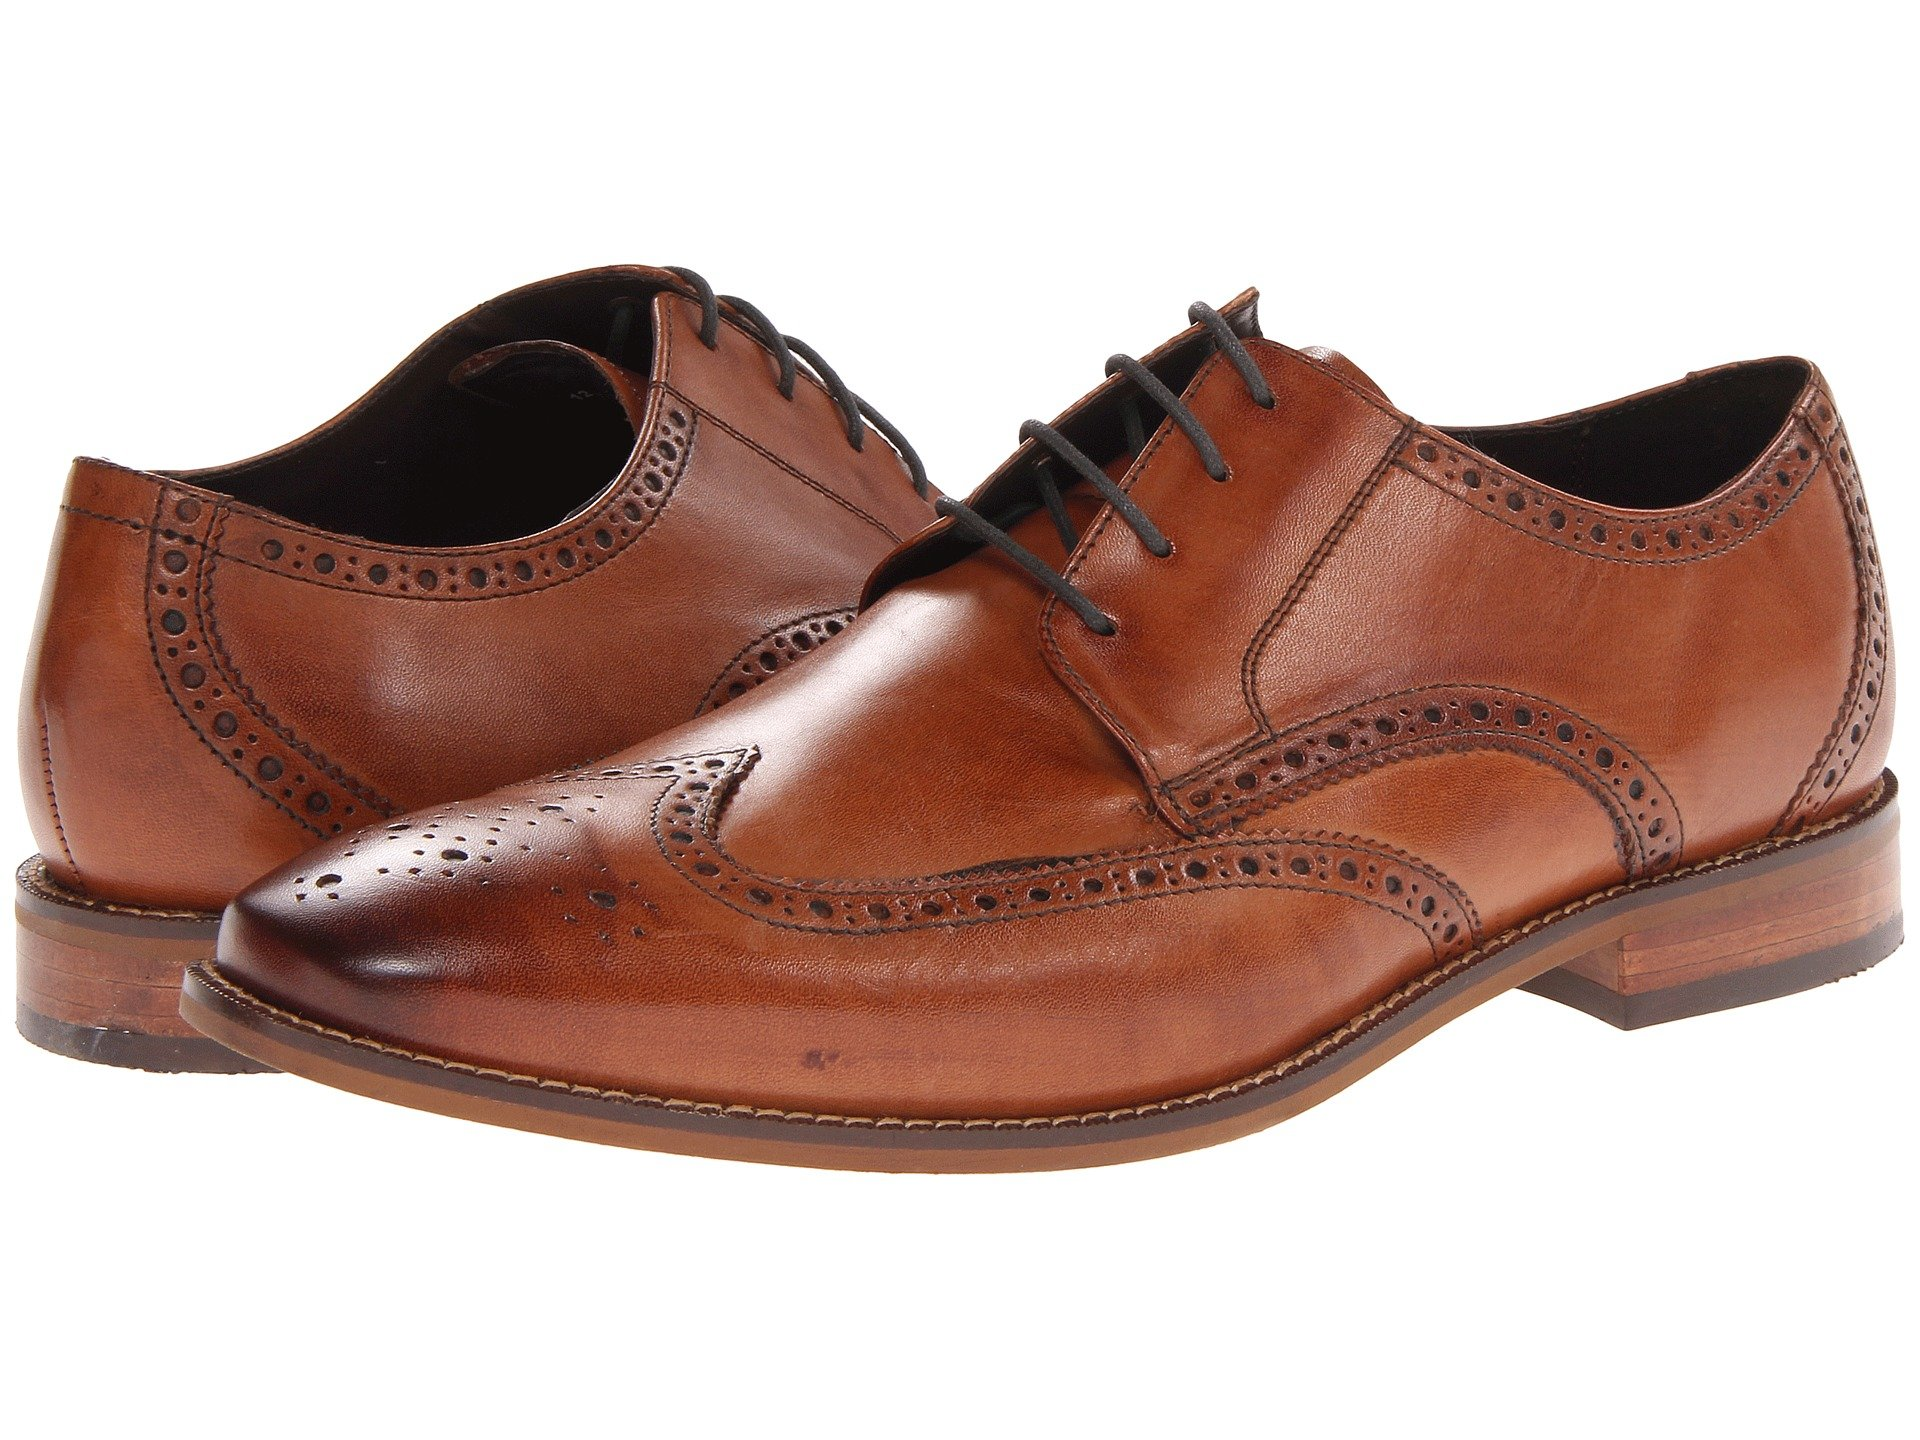 Florsheim Castellano Wingtip Oxford